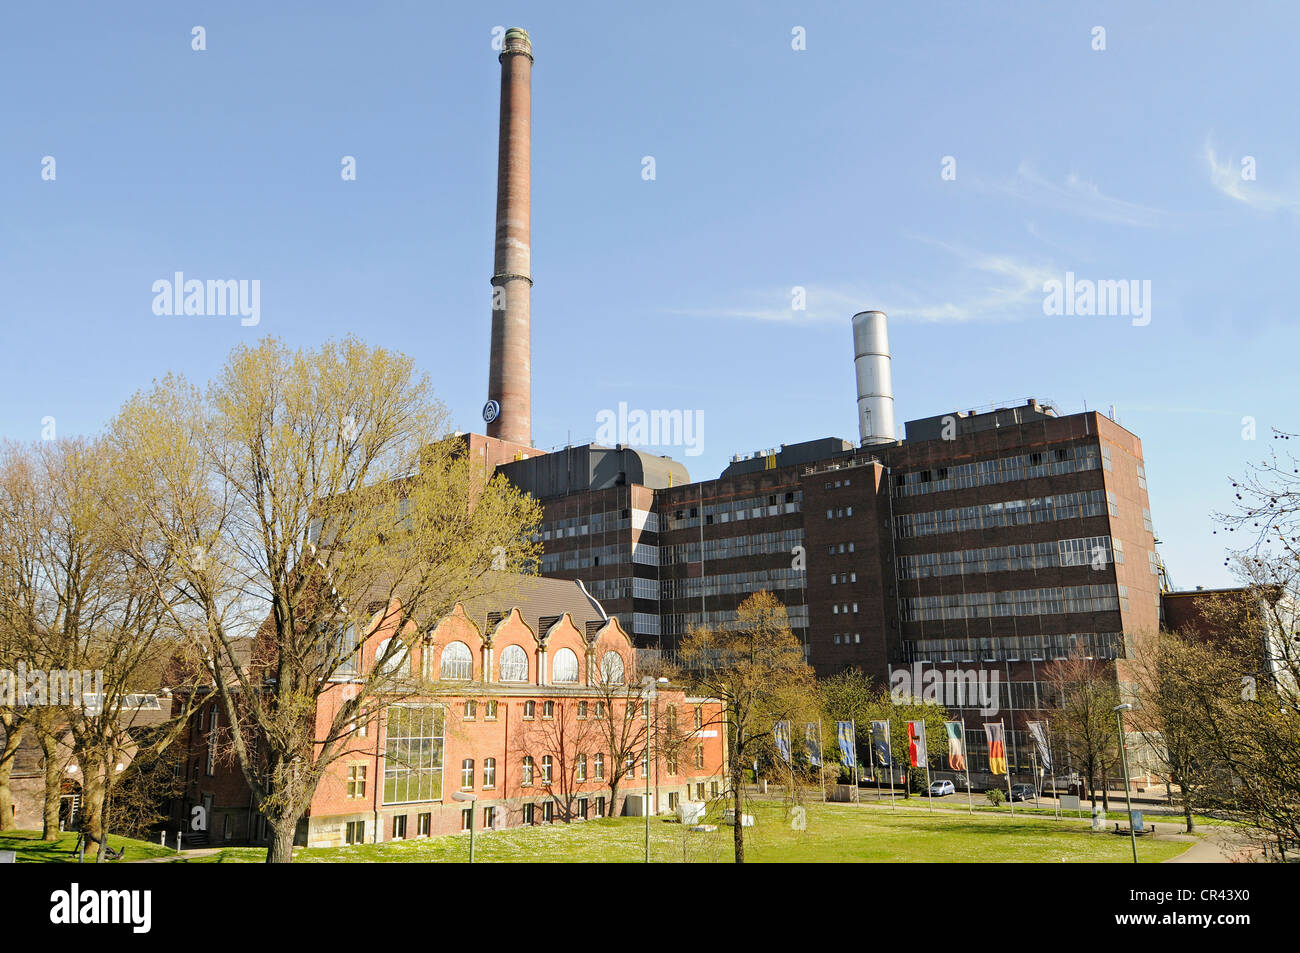 Museum of German Inland Navigation, Duisburg-Ruhrort, Duisburg, Ruhrgebiet region, North Rhine-Westphalia, Germany, - Stock Image